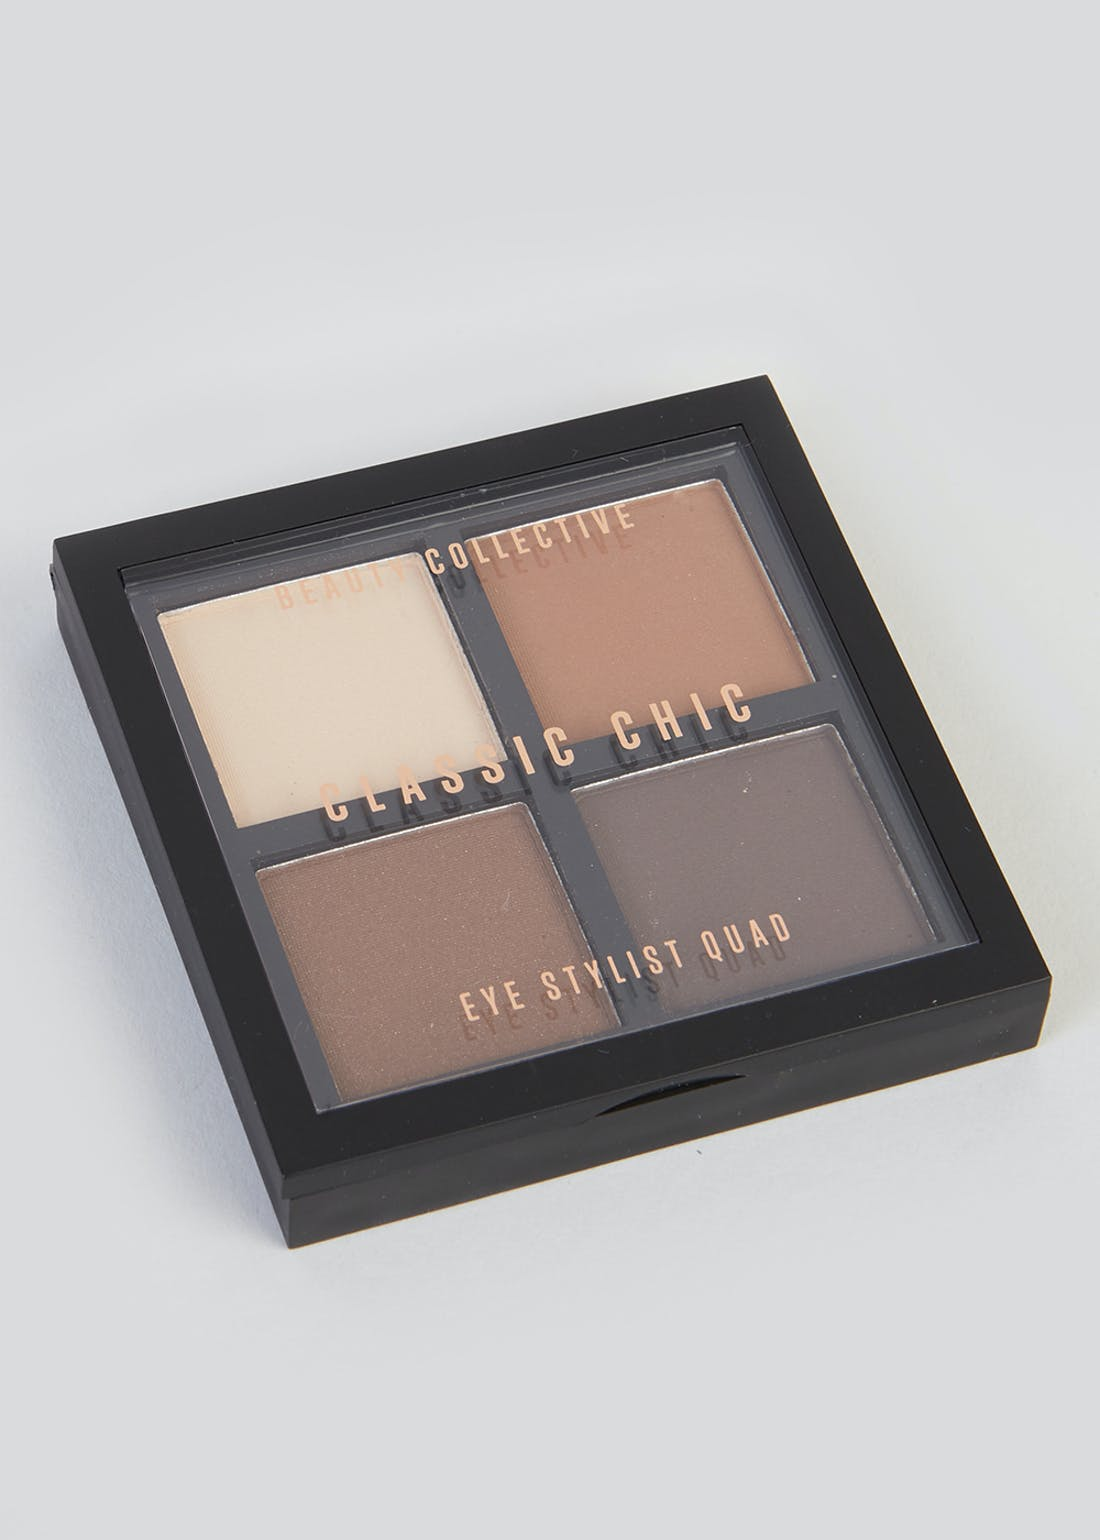 Beauty Collective Classic Chic Eye Stylist Quad